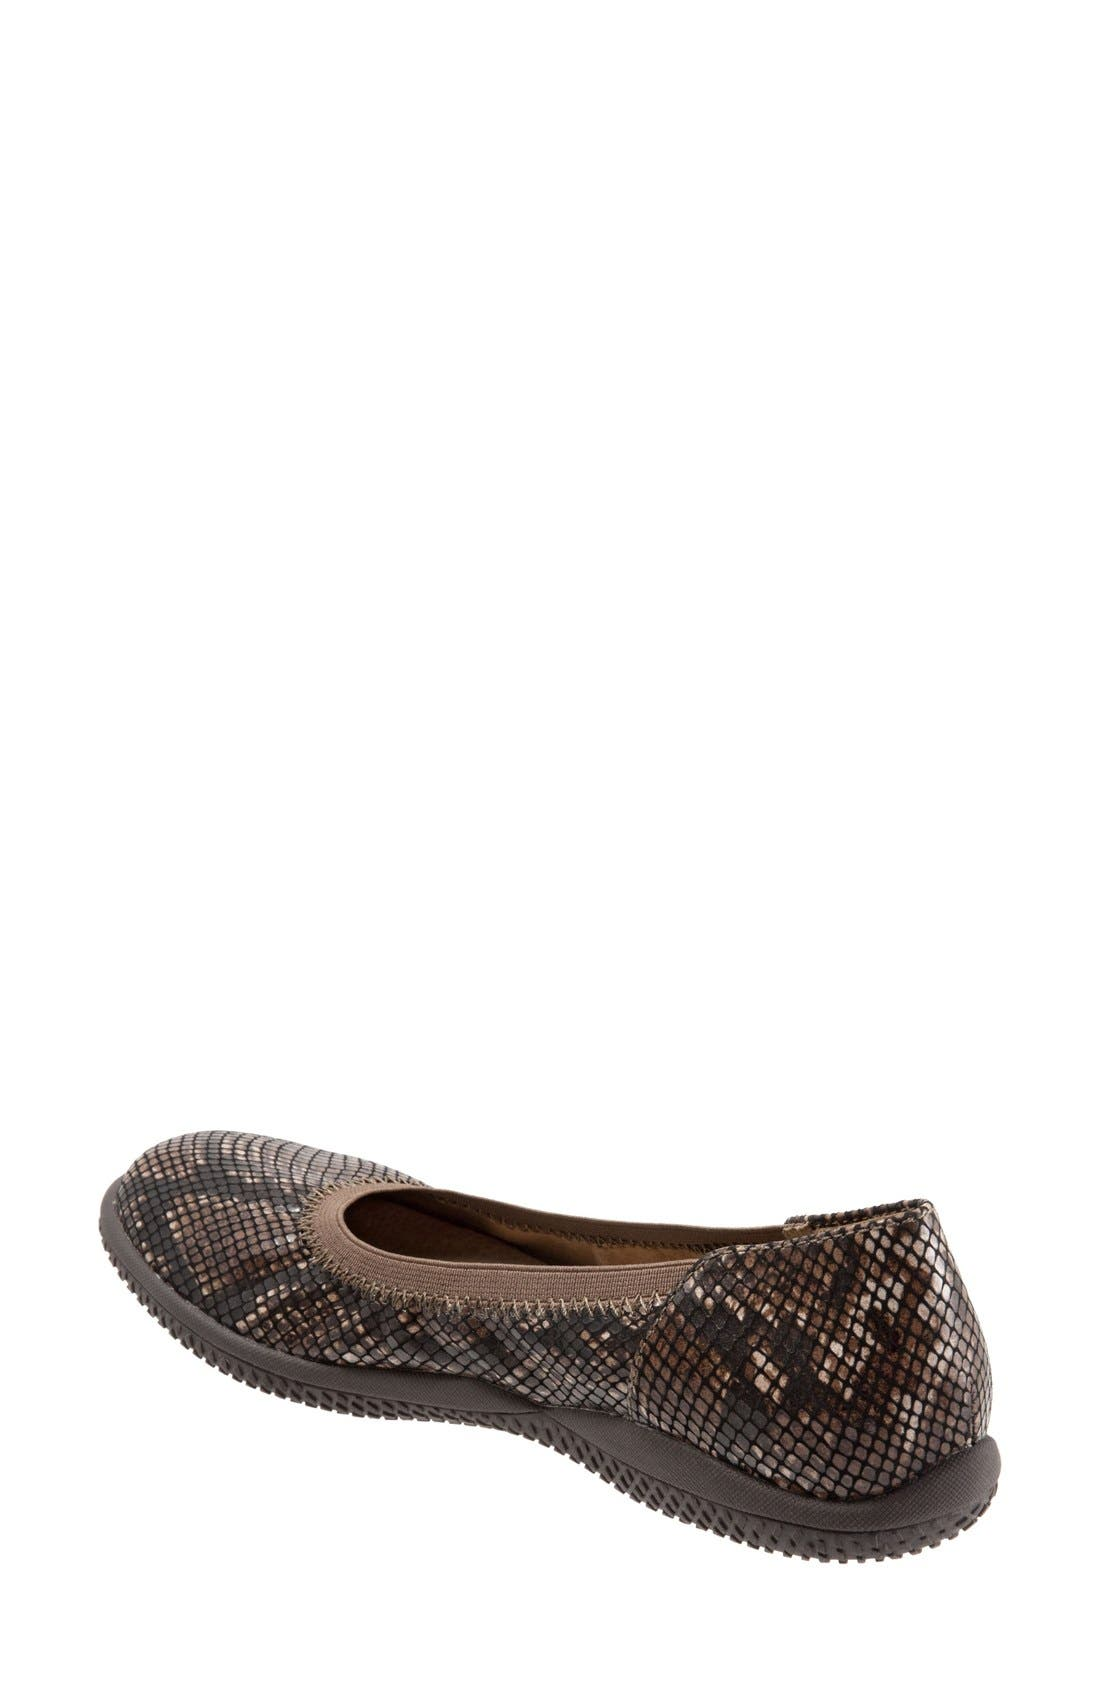 'Hampshire' Dot Perforated Ballet Flat,                             Alternate thumbnail 2, color,                             Brown Python Print Leather